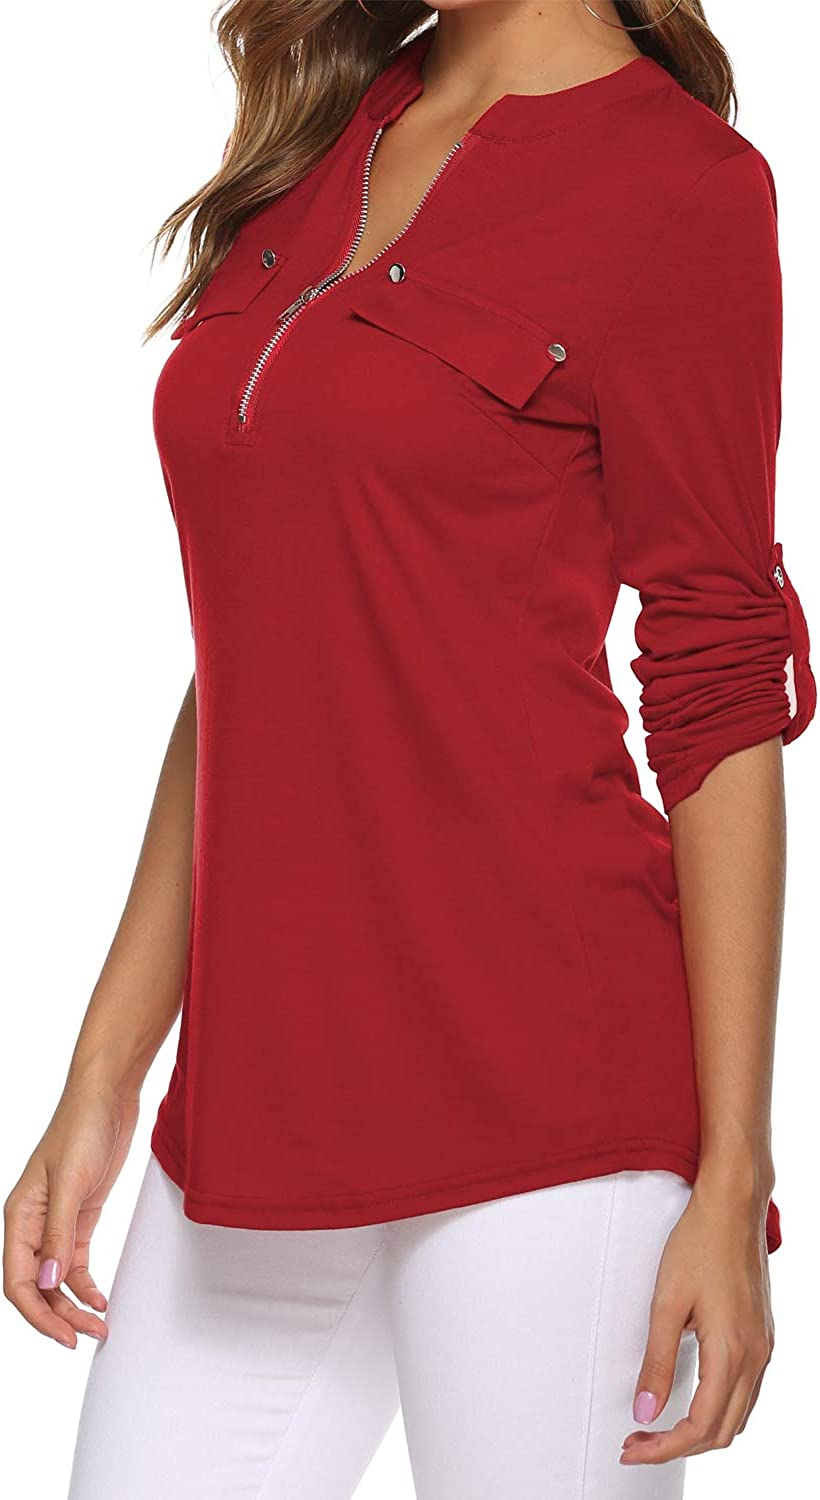 LuckyMore Womens V Neck Zip Cuffed Sleeve Flowy Business Casual Work Tunic Tops Shirts Blouse